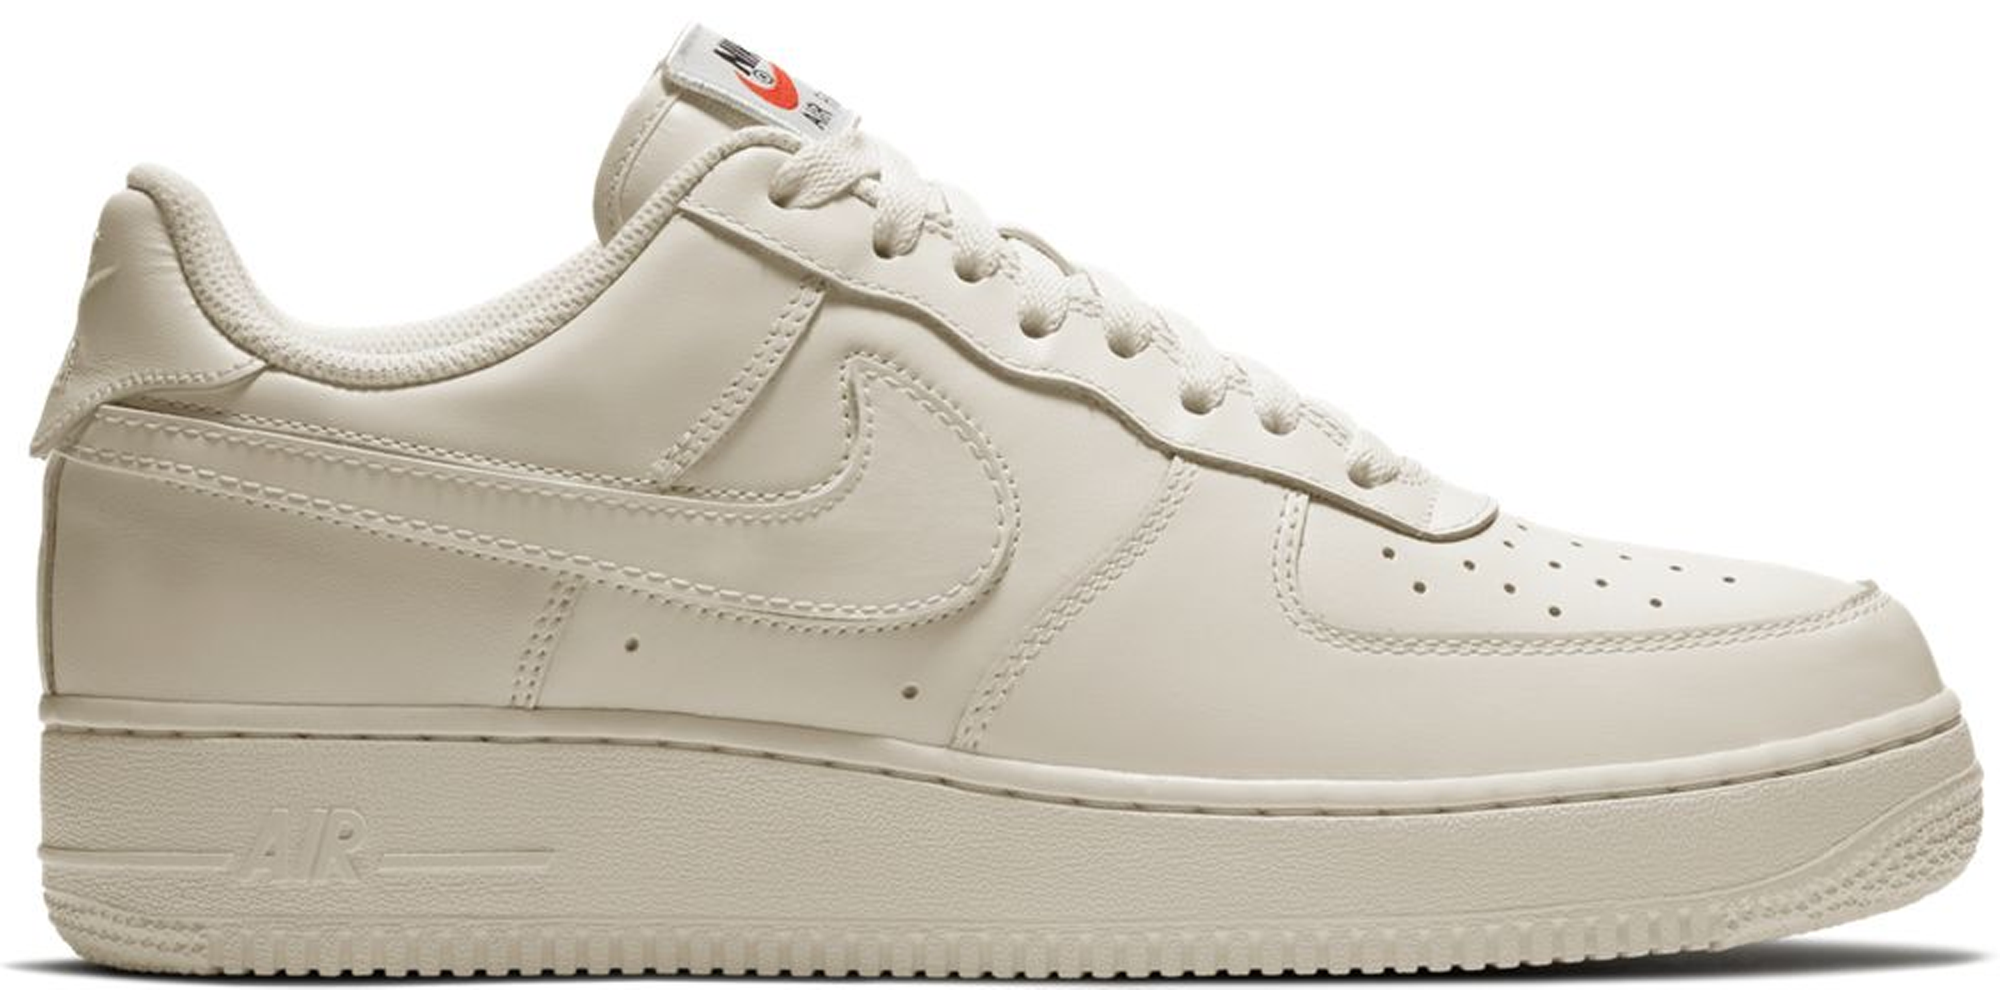 Nike Air Force 1 Low Swoosh Pack Sail All-Star 2018